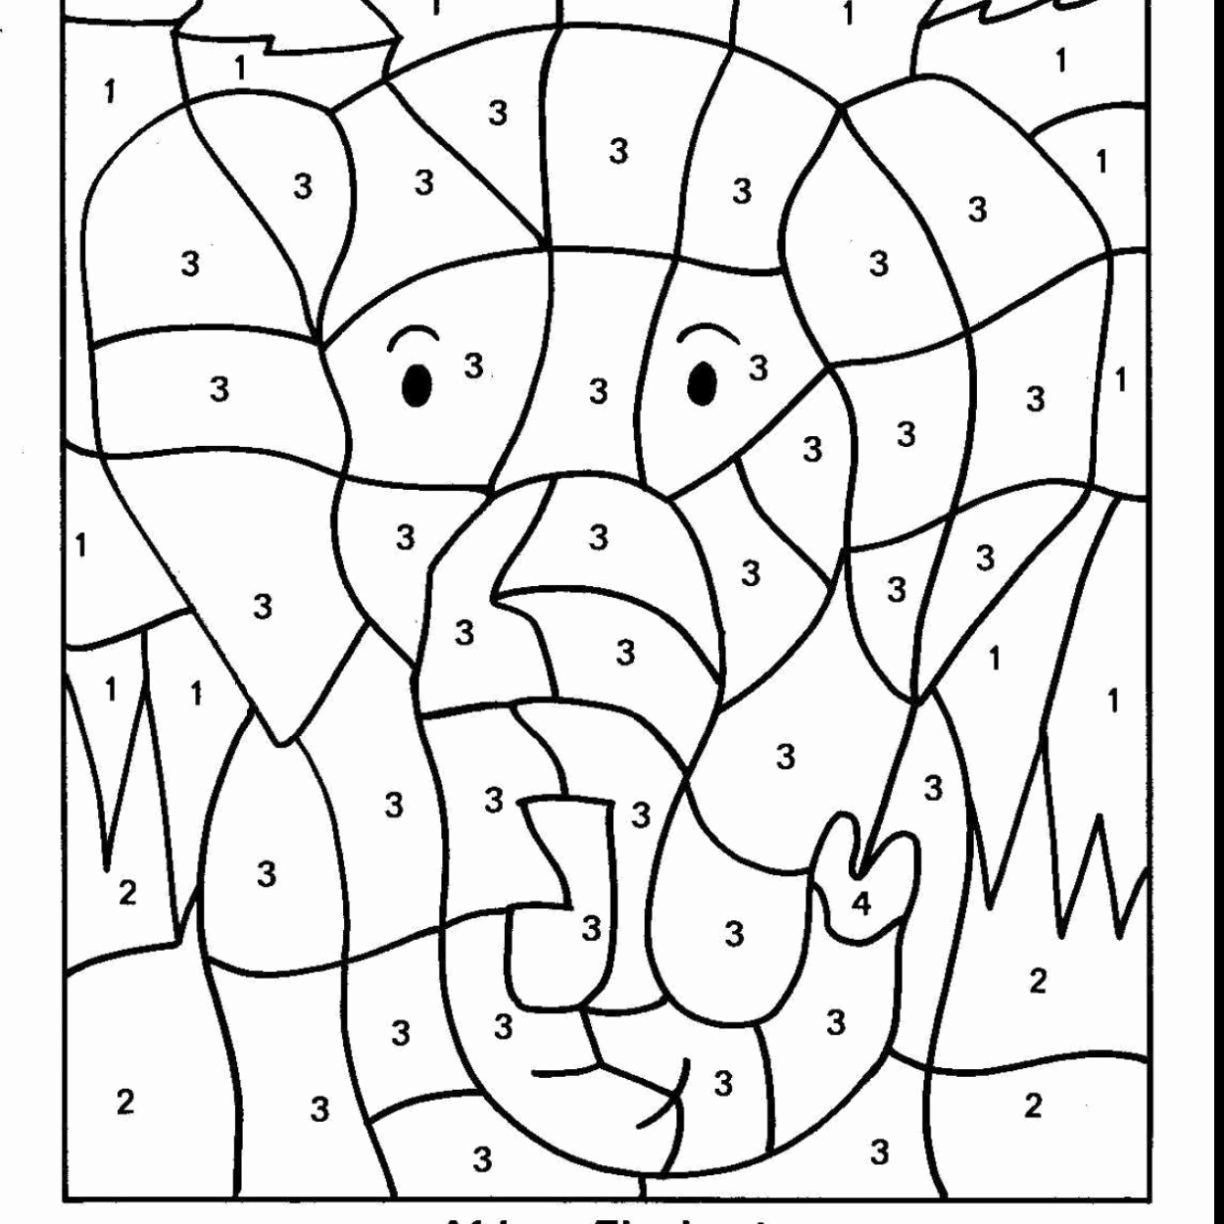 Math Coloring Worksheets 7th Grade Best Of Coloring Pages for 7th Graders at Getcolorings